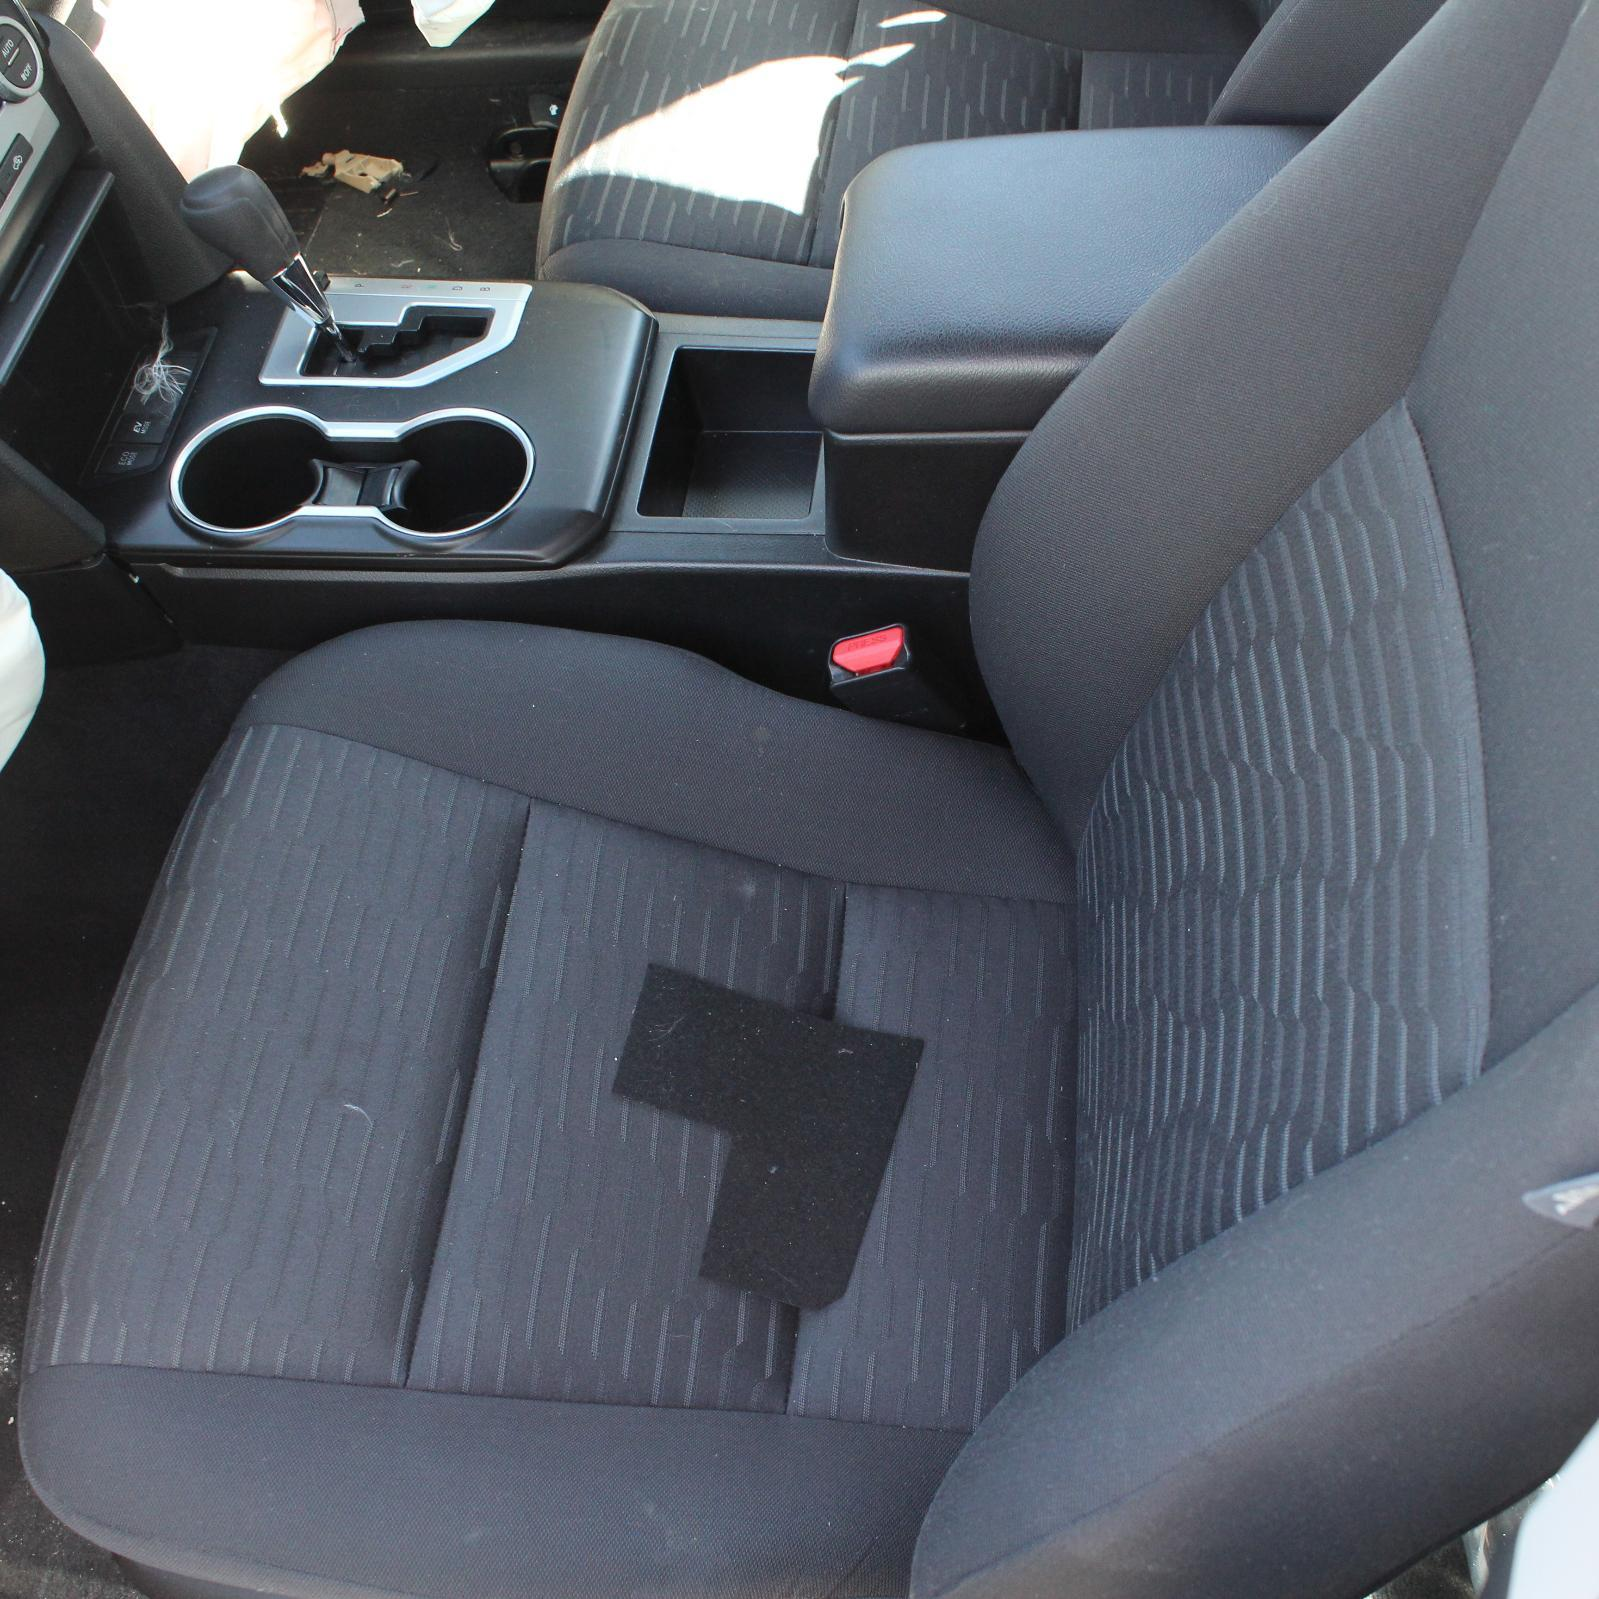 TOYOTA CAMRY, Front Seat, LH FRONT, ACV50, CLOTH, ALTISE/RZ/ATARA R, 12/11-10/17